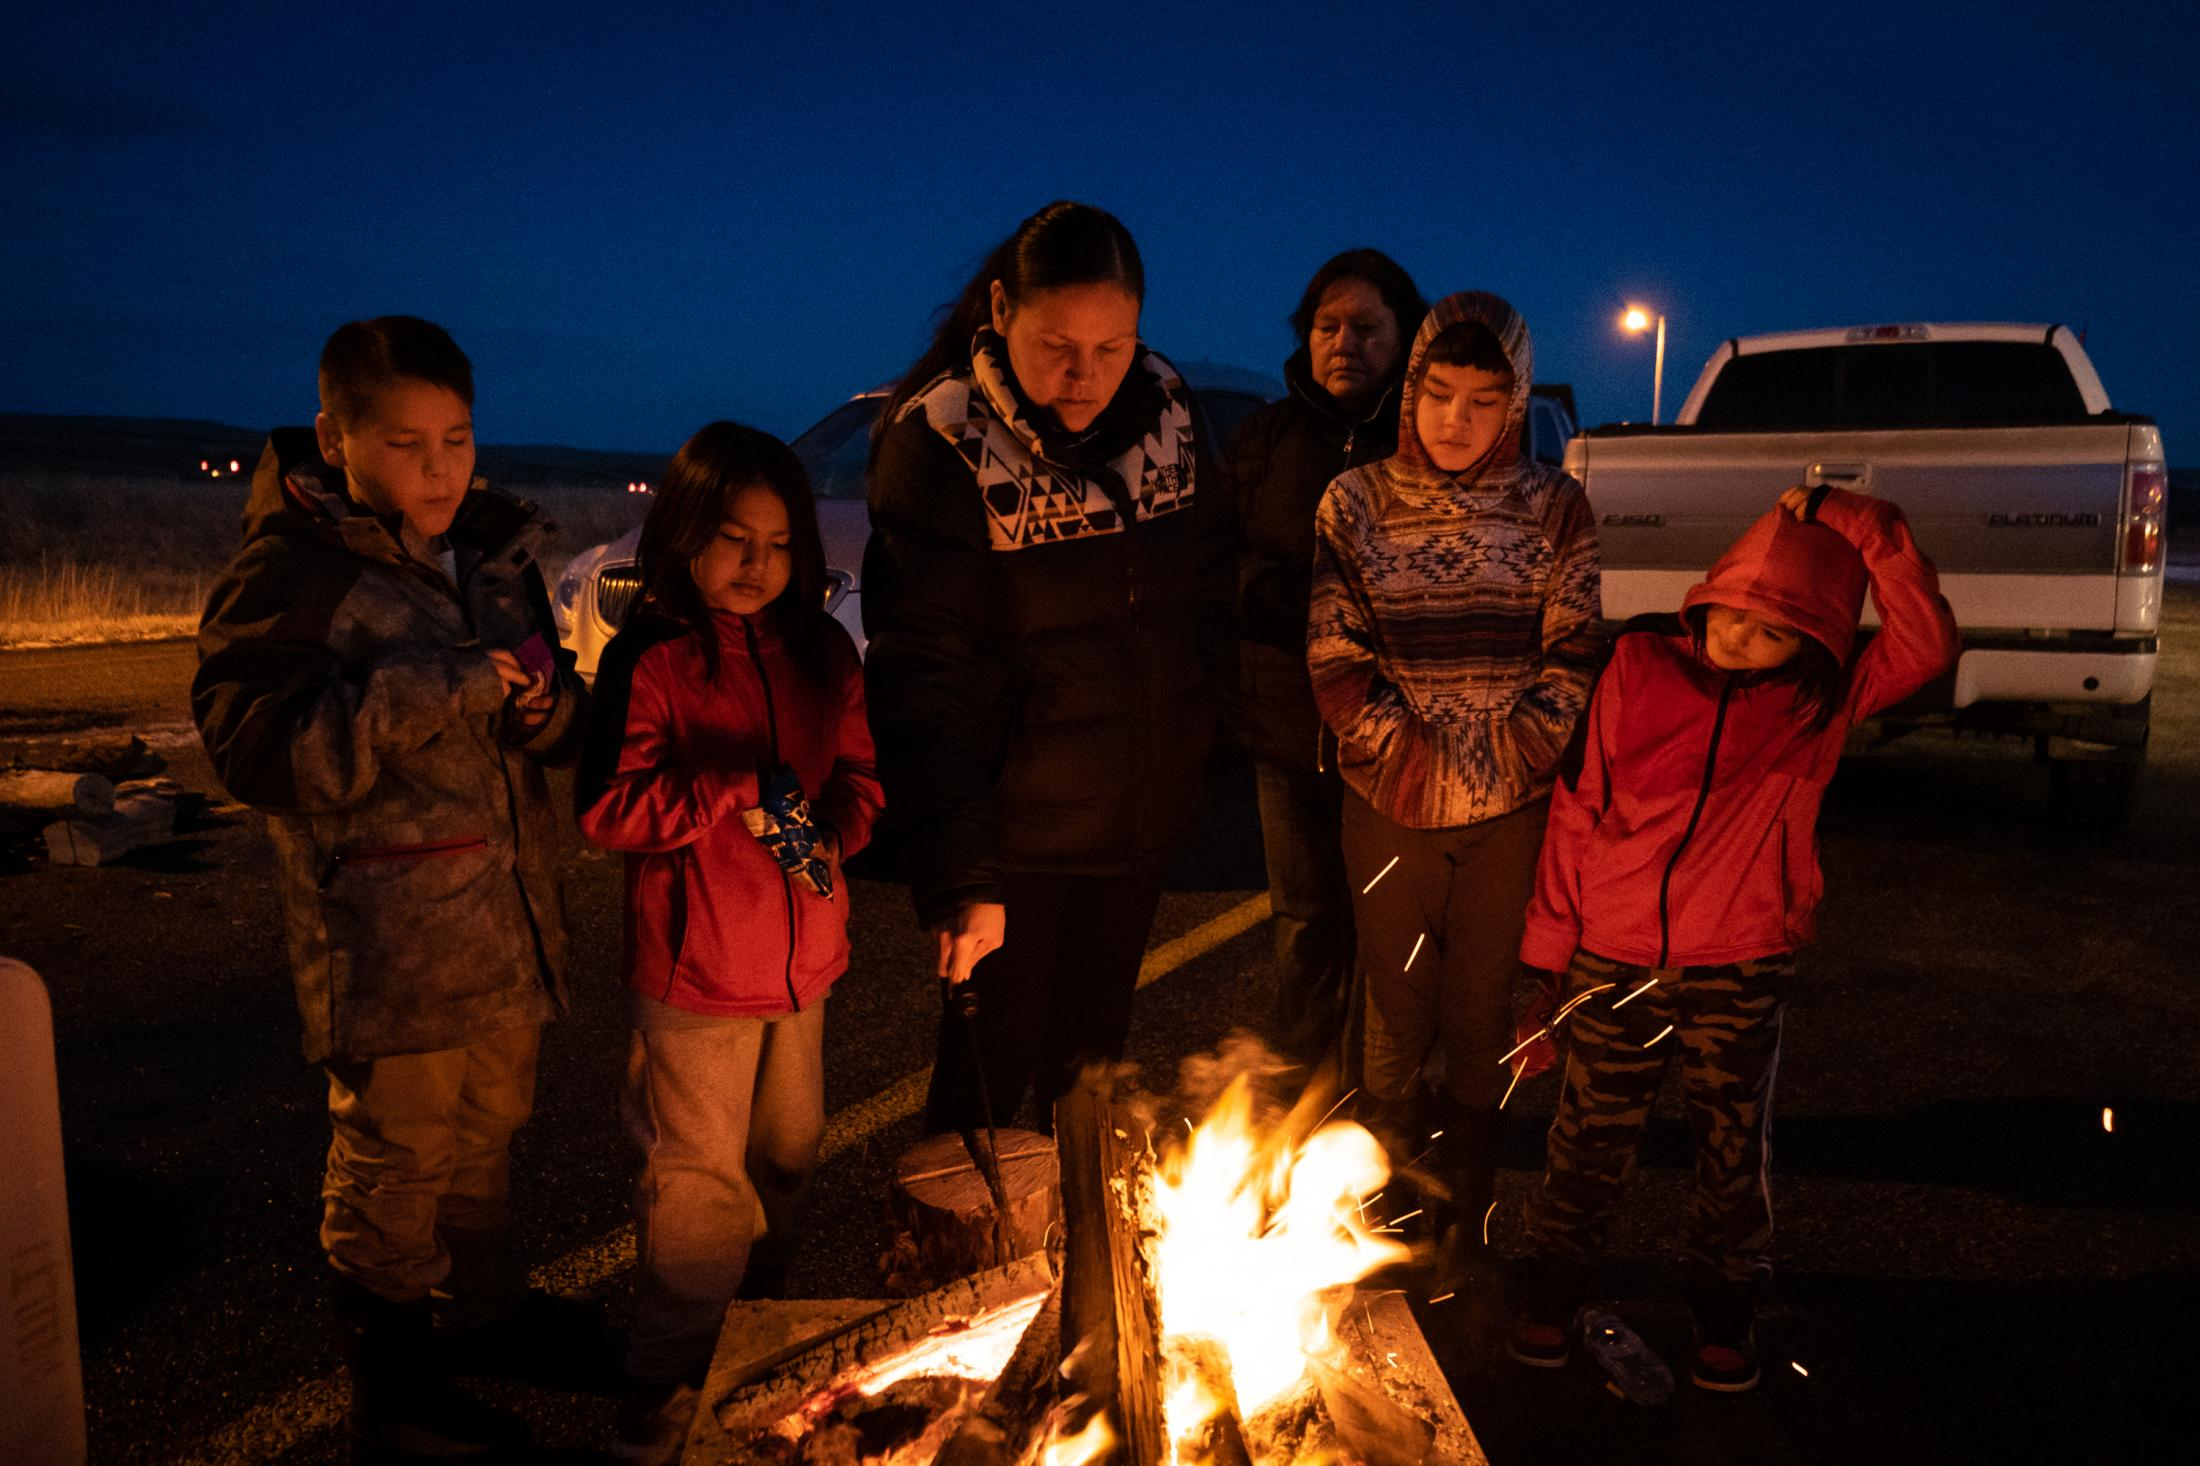 Selena's cousins gathered near a fire at the rest stop on the 10th night of her disappearance.